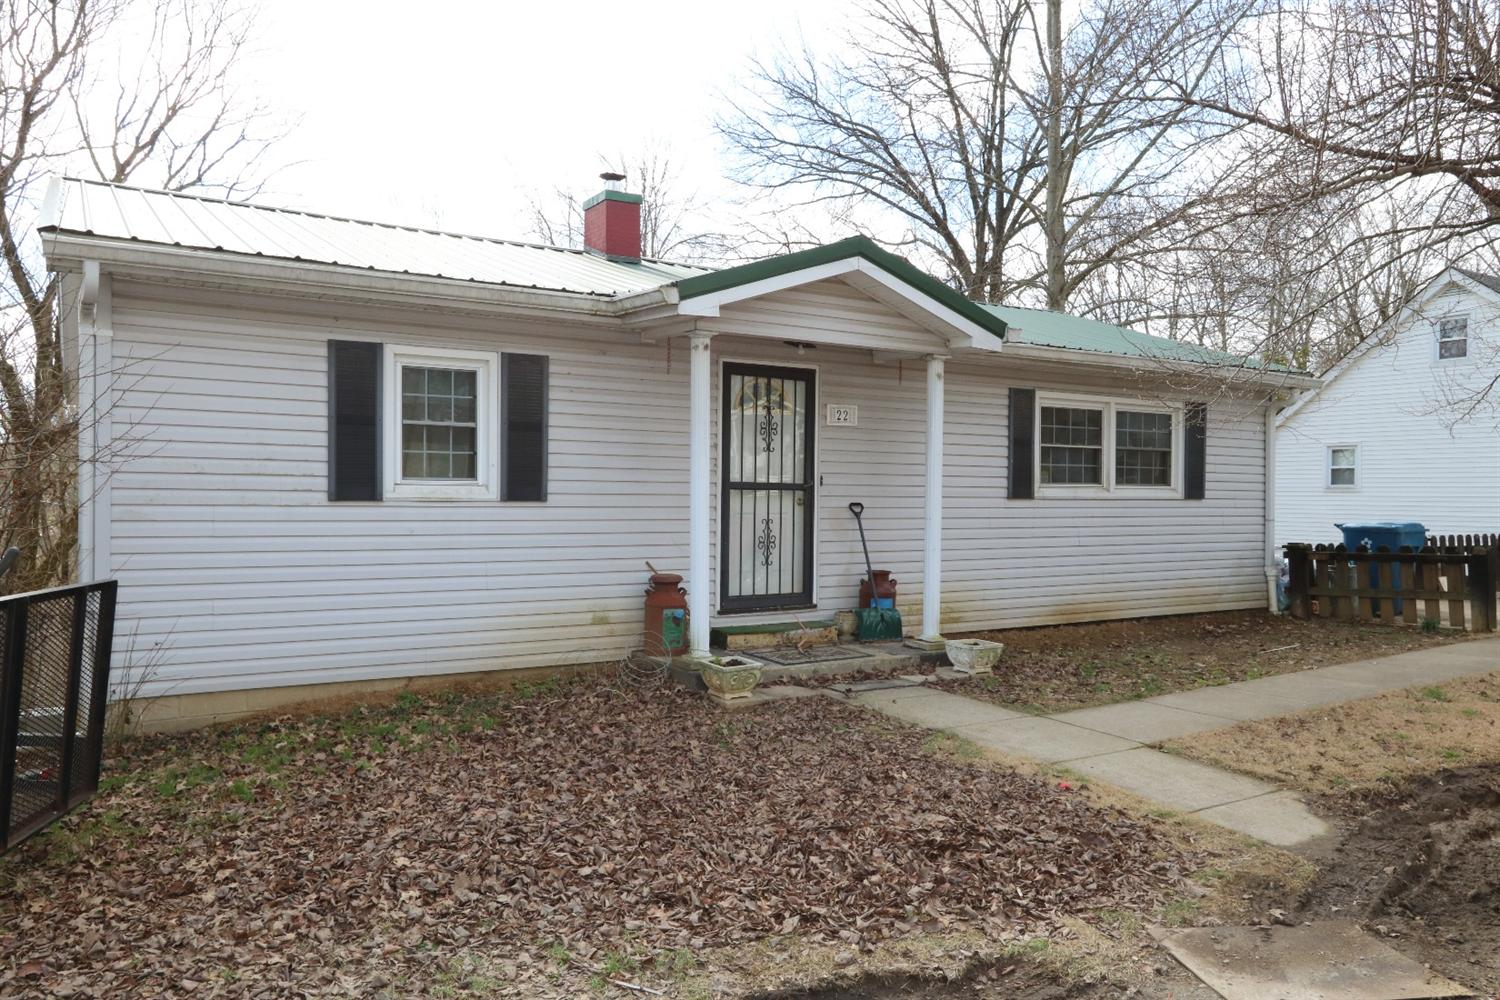 22 Sayers Dr, Williamstown, KY 41097